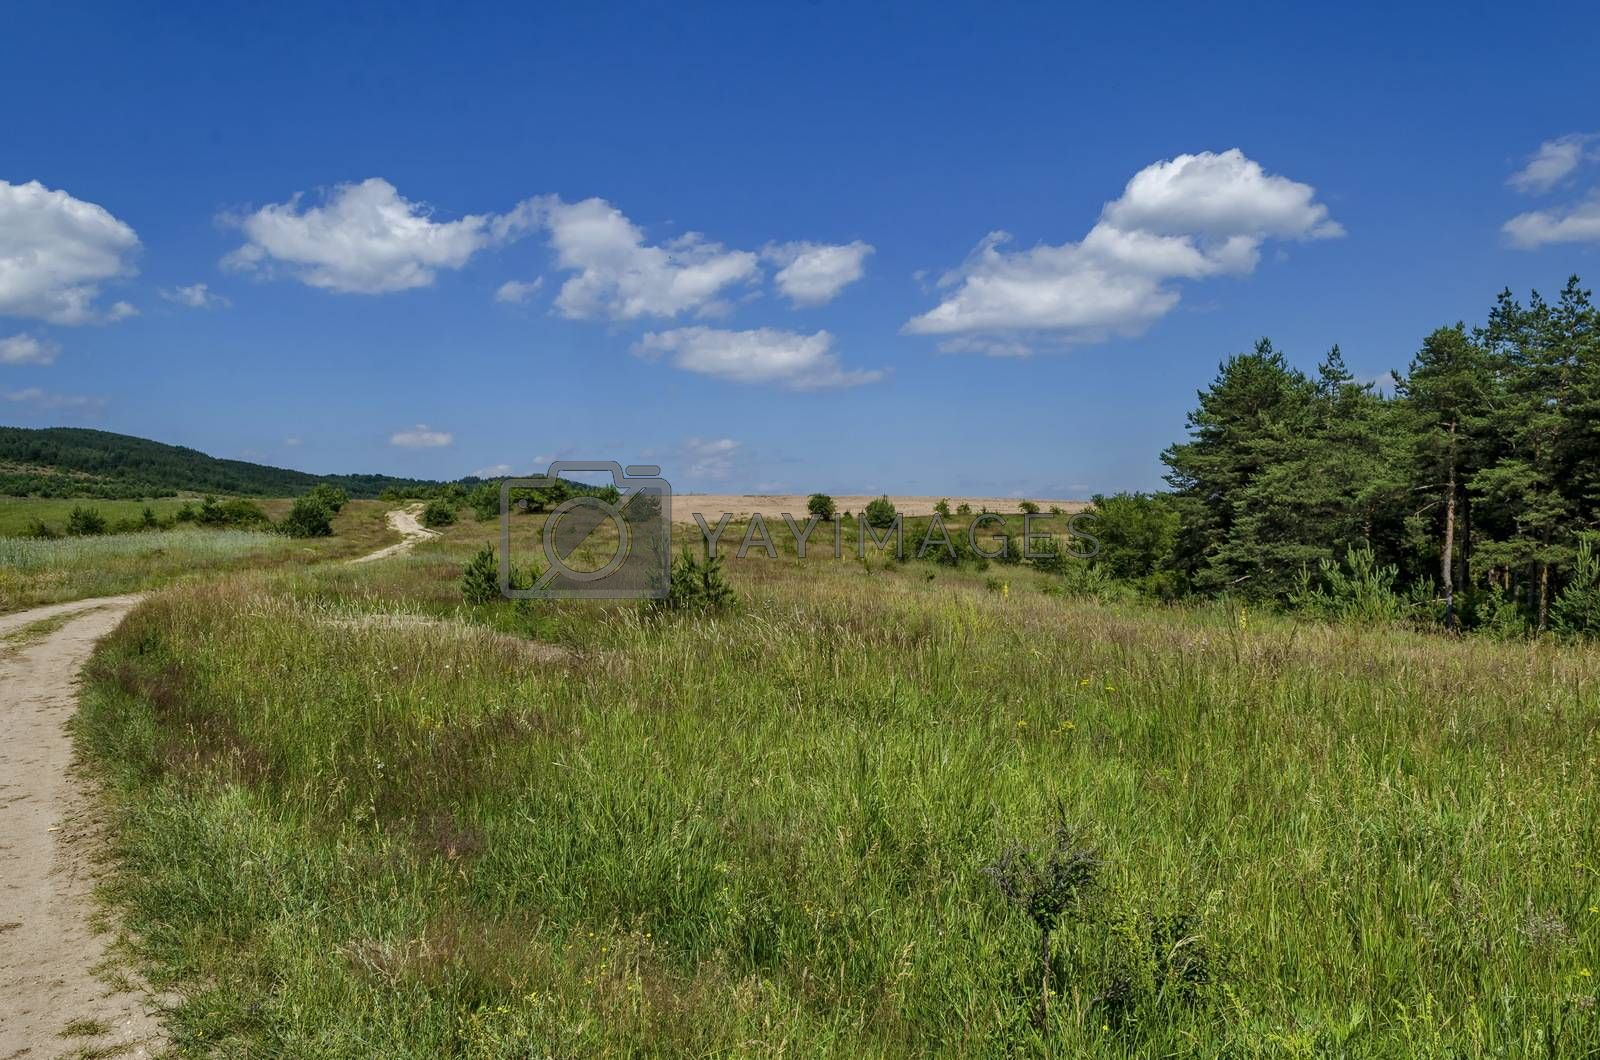 Background of sky, clouds, field,  road  and forest, Plana mountain, Bulgaria